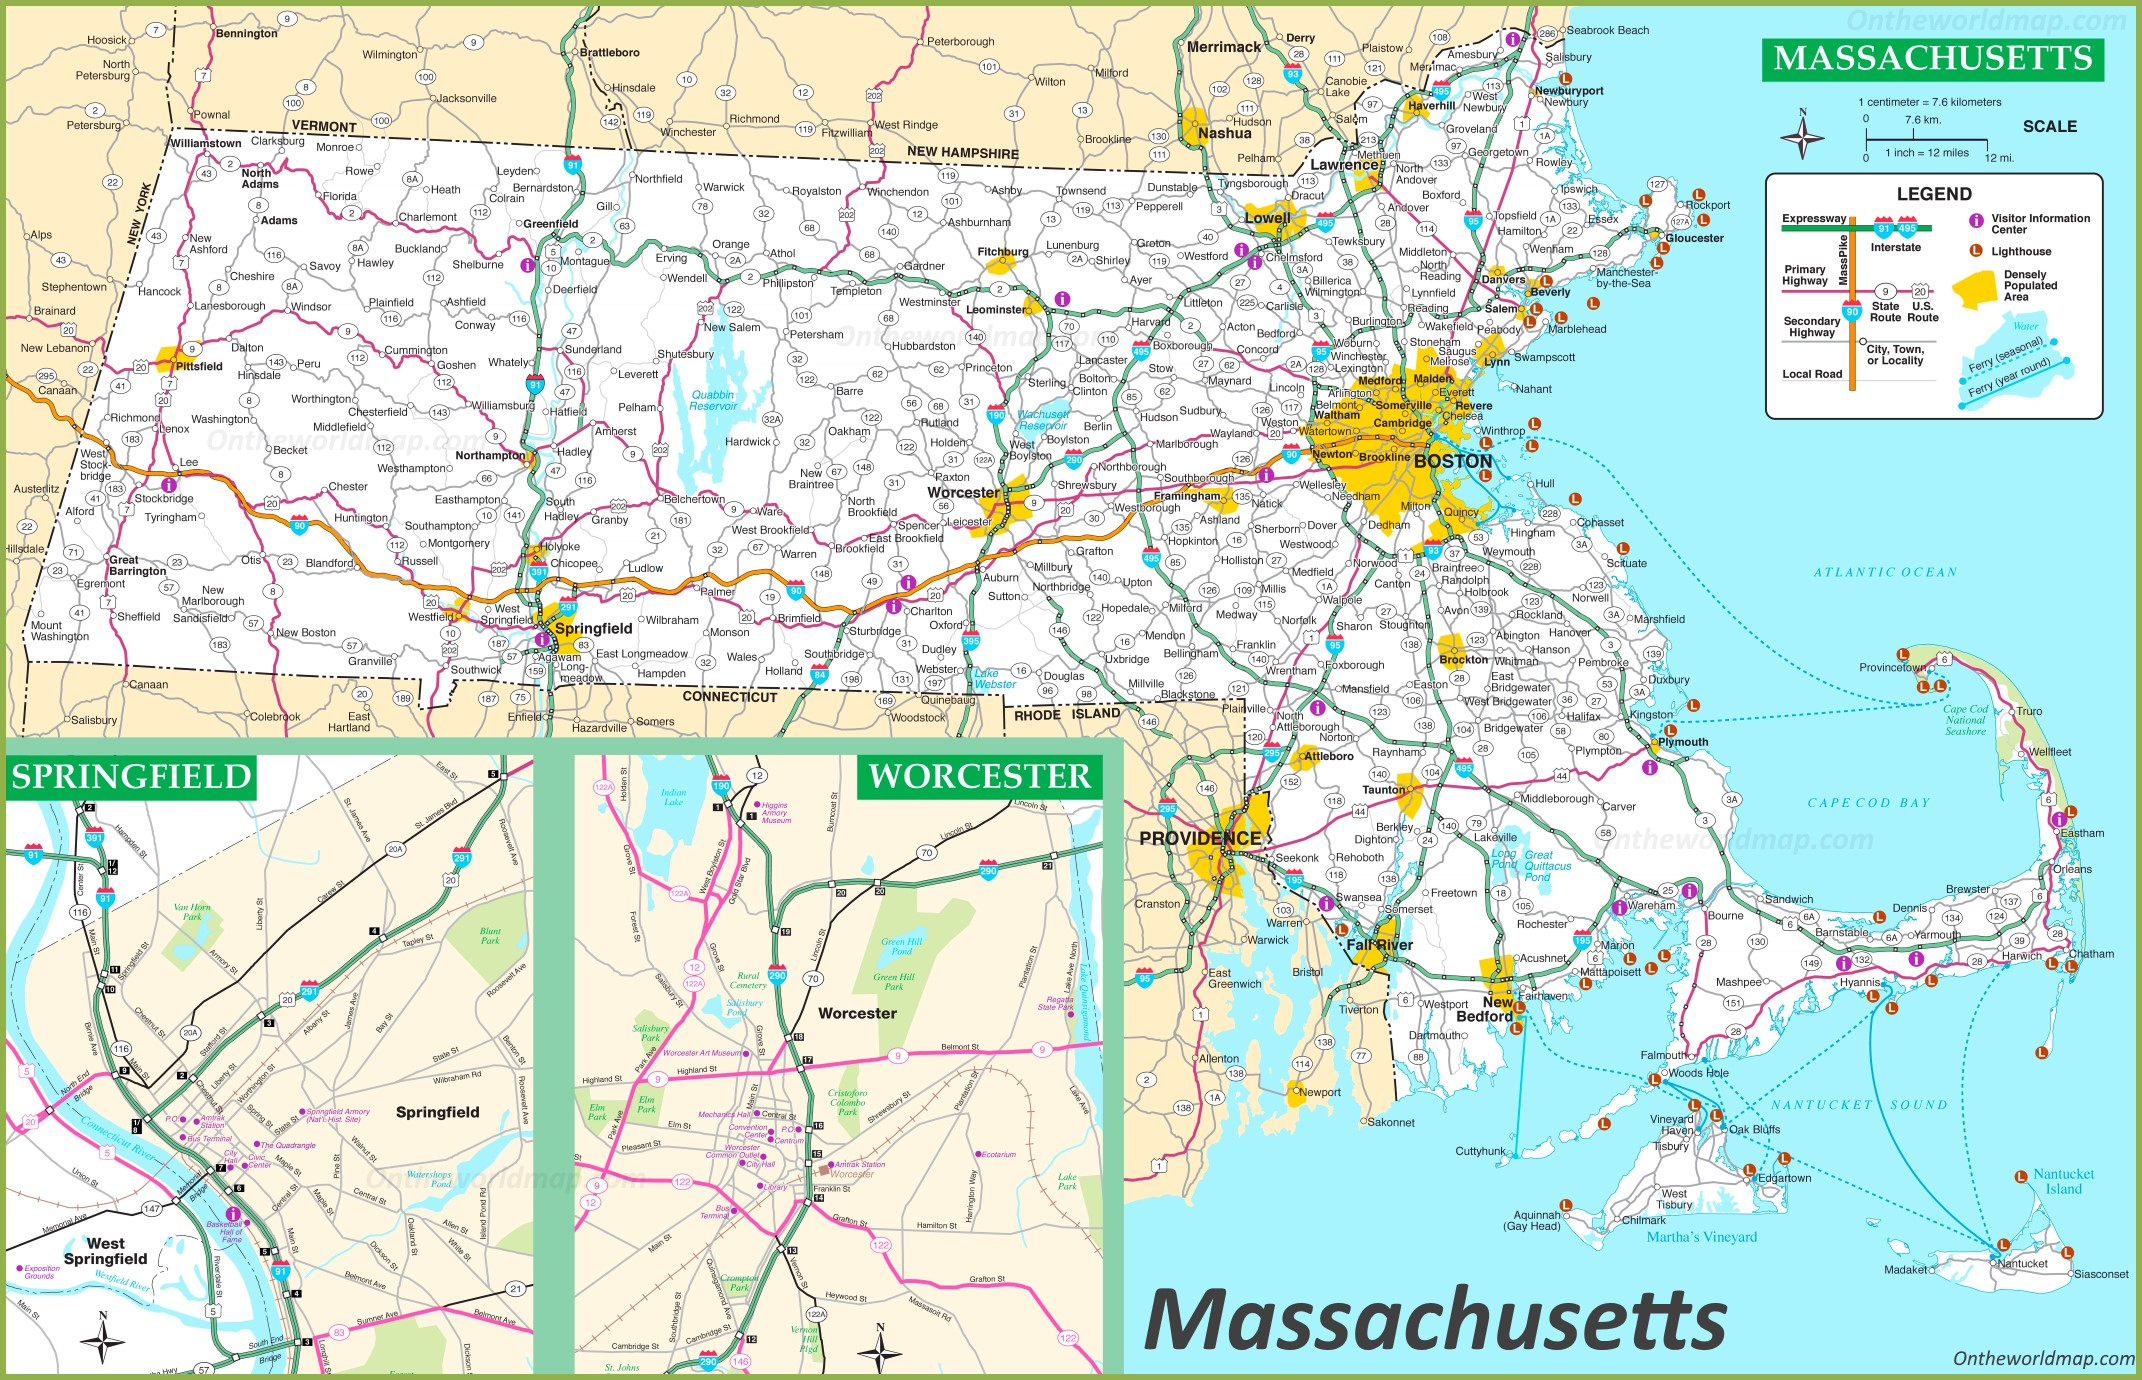 Massachusetts State Maps USA Maps Of Massachusetts MA - Map of massachussets